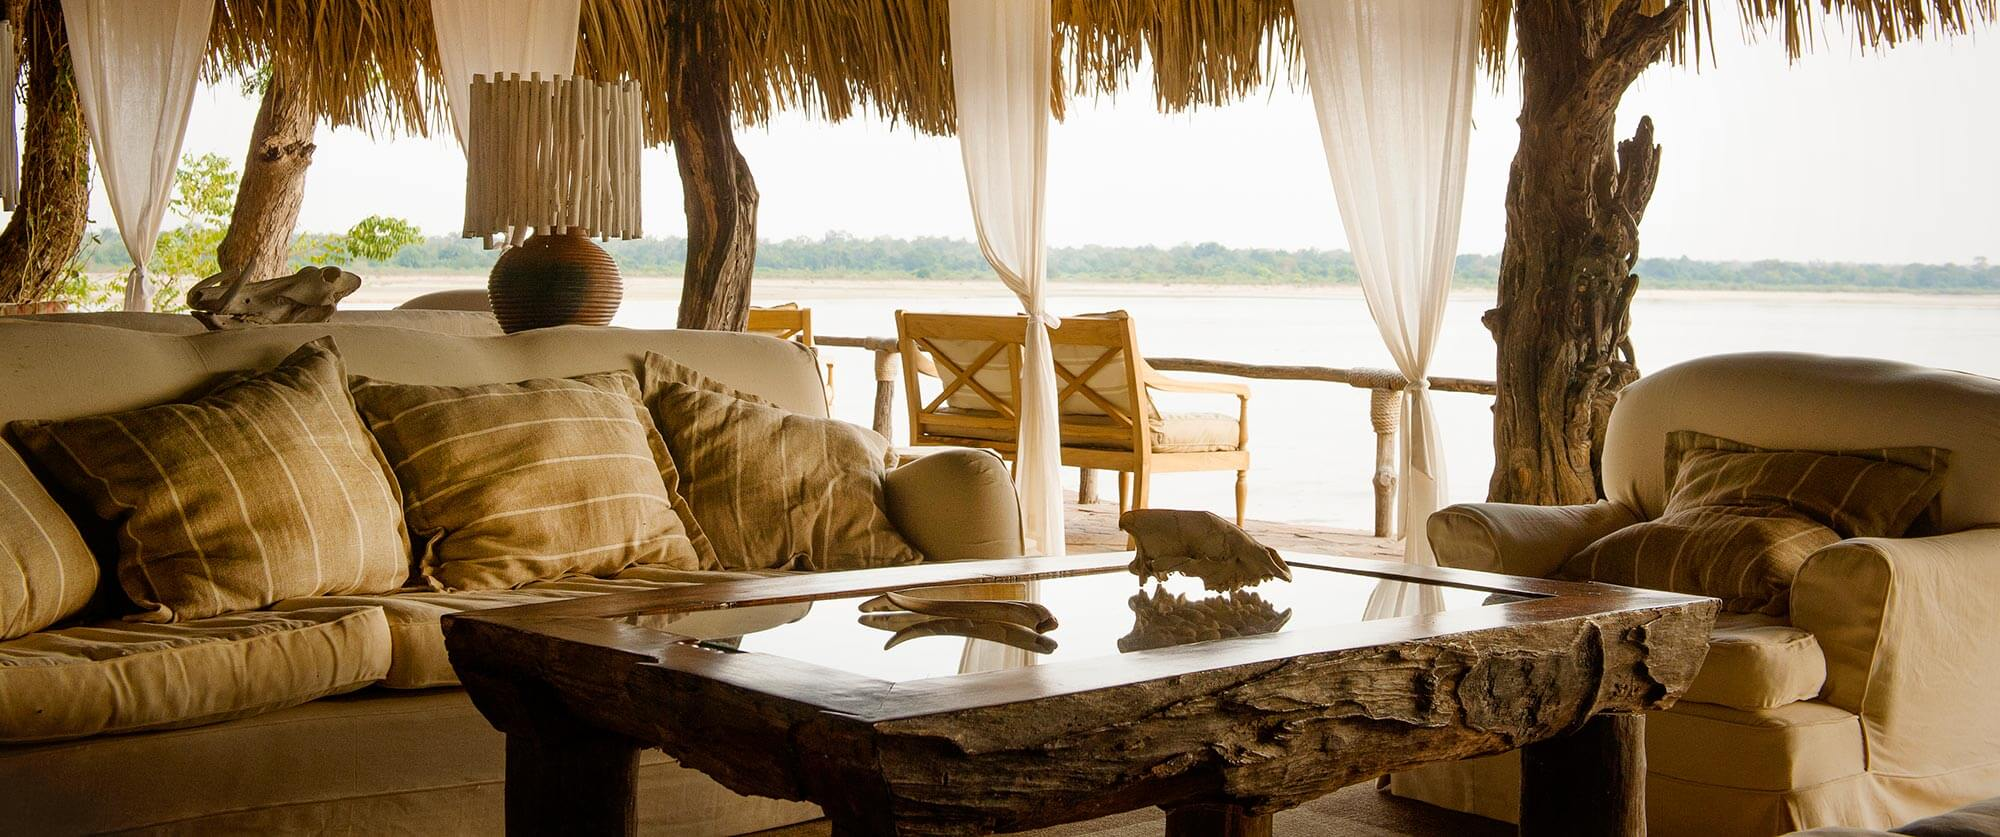 Lounge at Sand Rivers Selous - Selous Game Reserve Safaris - Remote Tanzania Safari Adventure